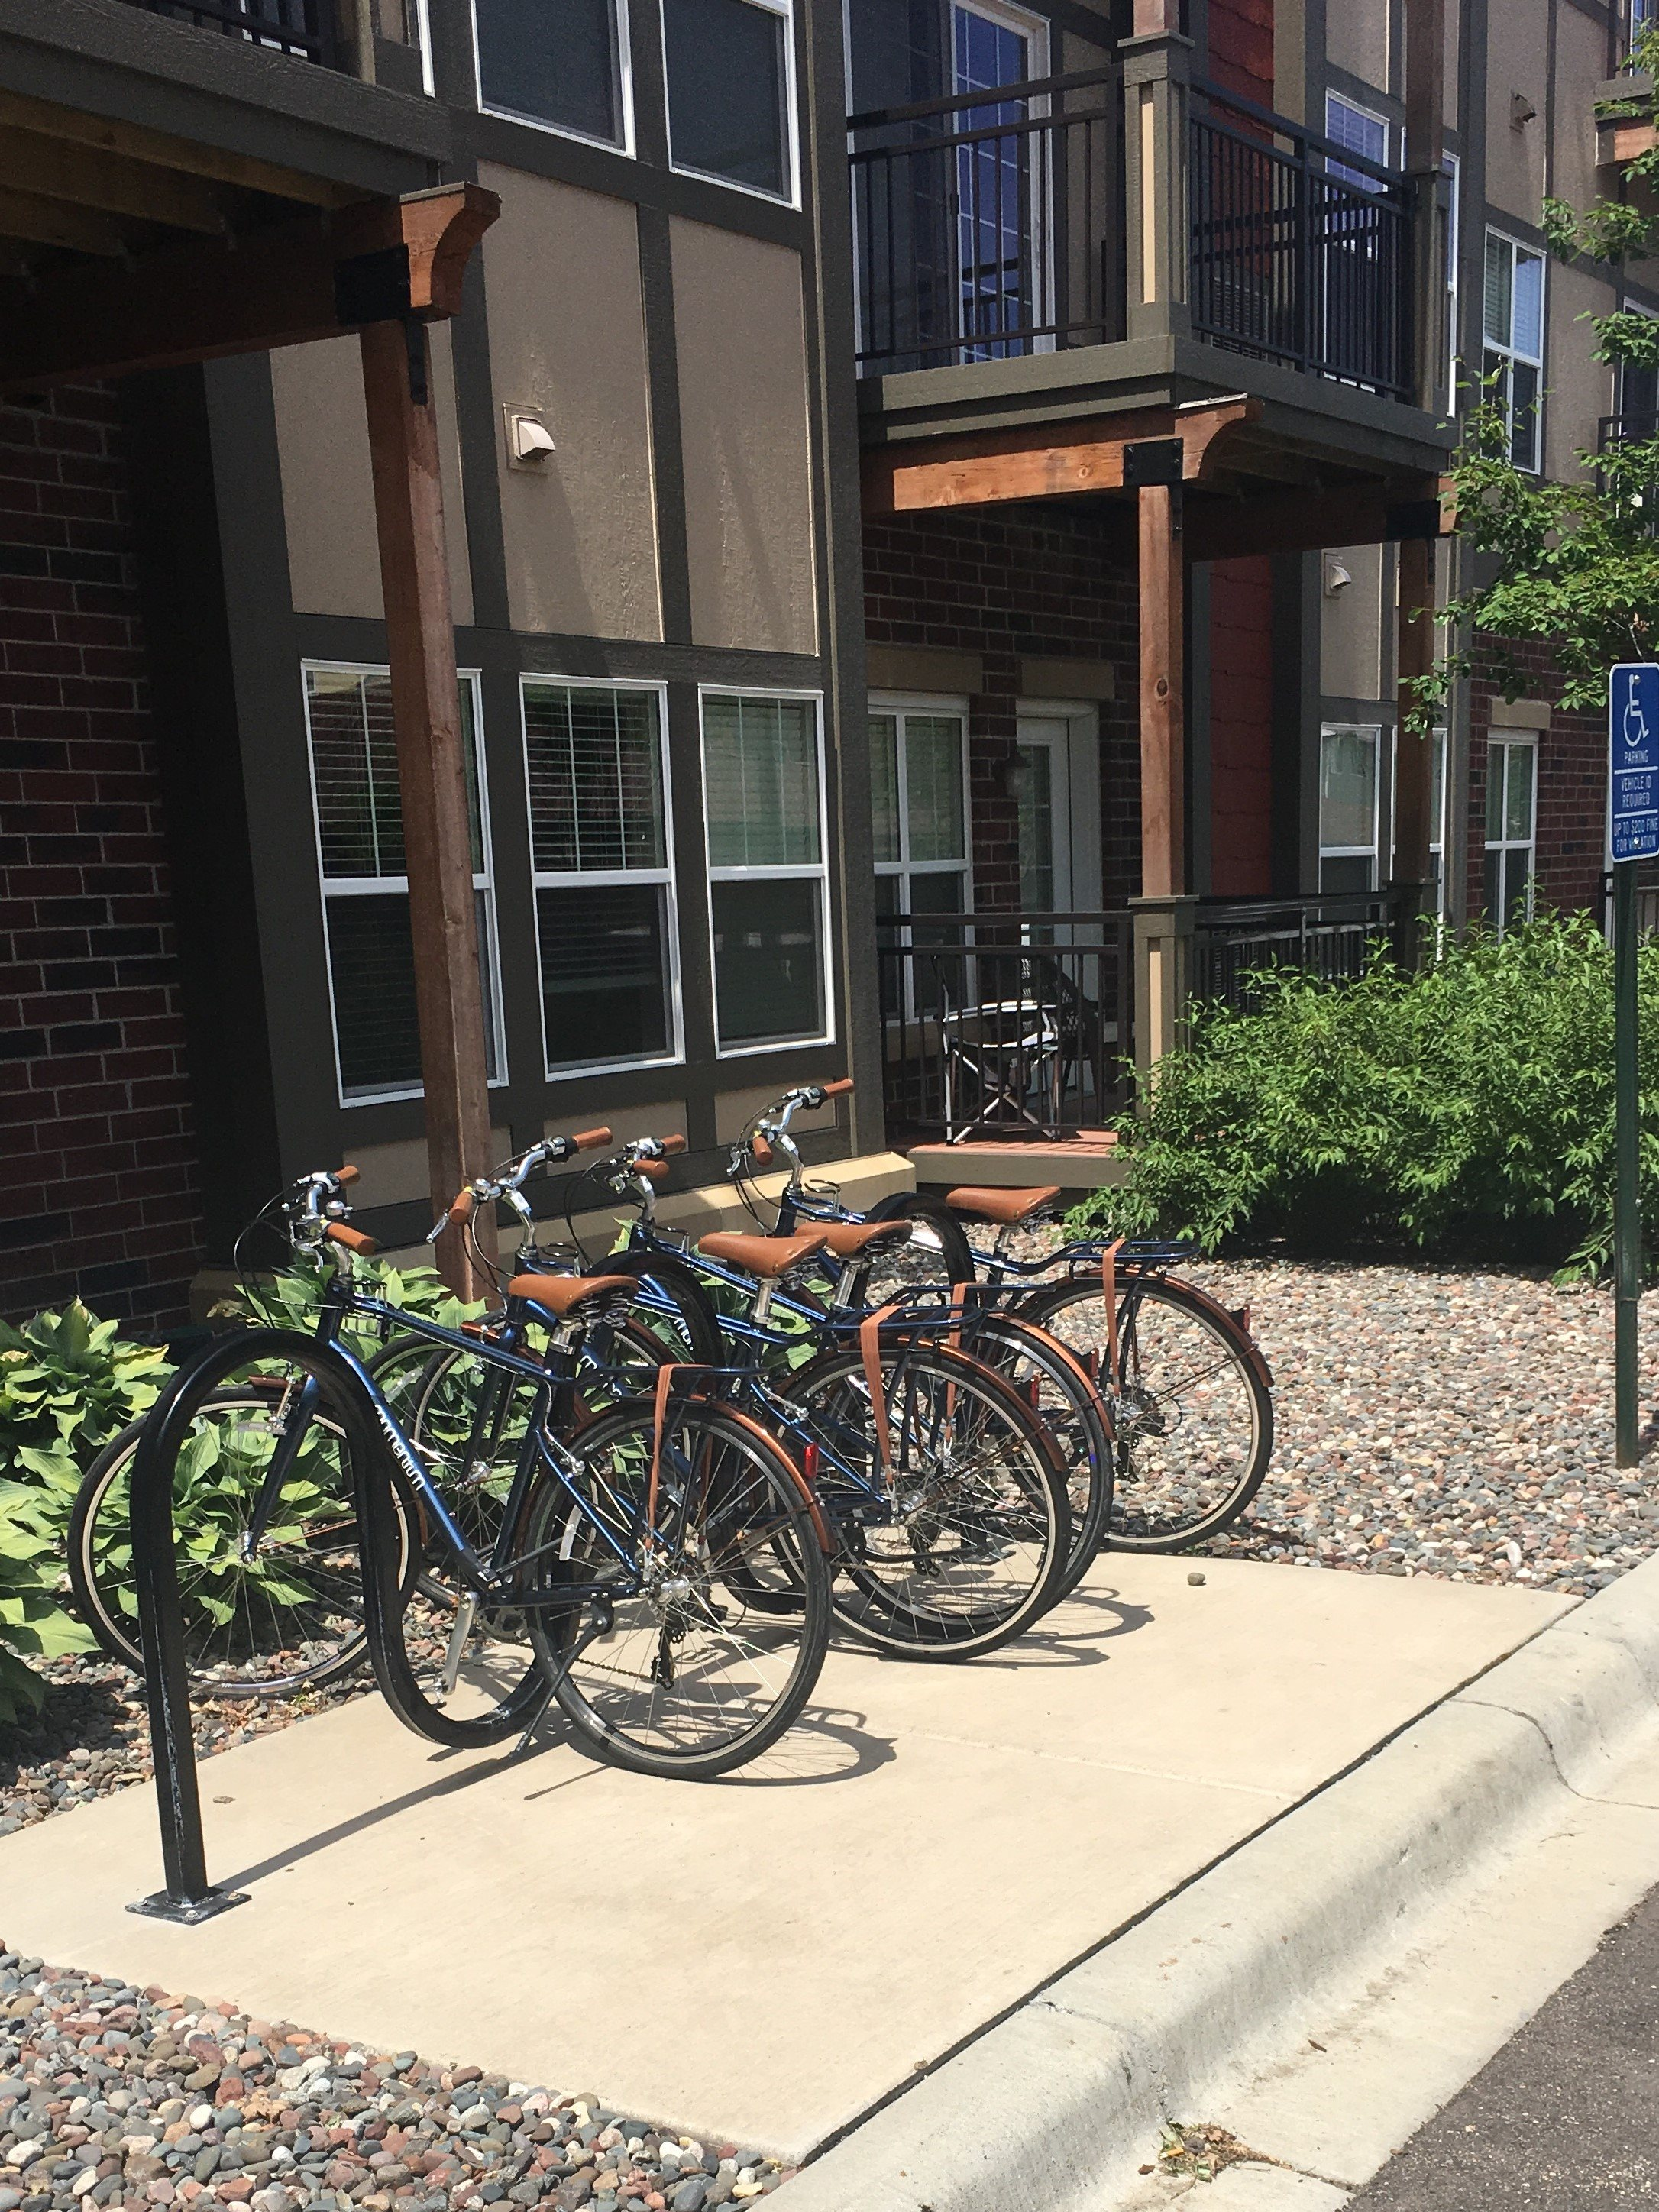 Community Bike Share Program at 5 Central Apartments, Osseo, Minnesota